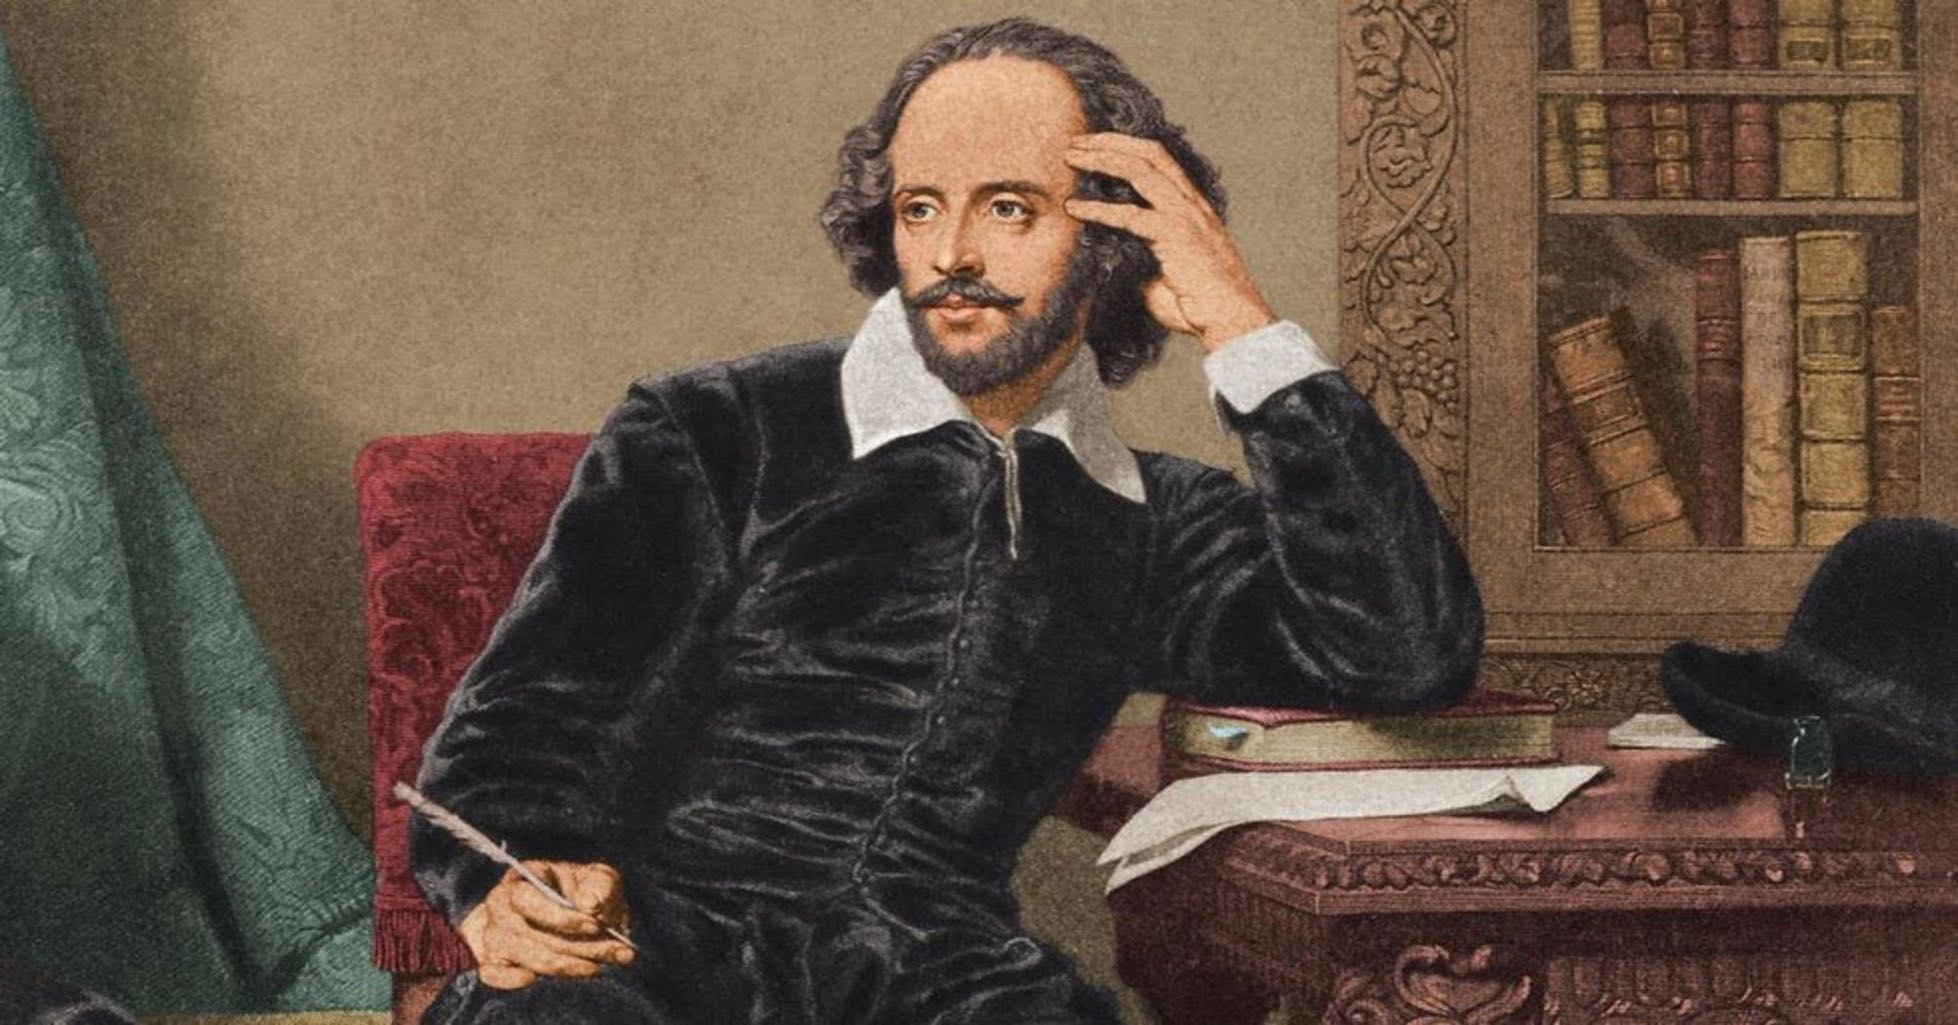 10 Shakespearean Pick Up Lines for History Nerds